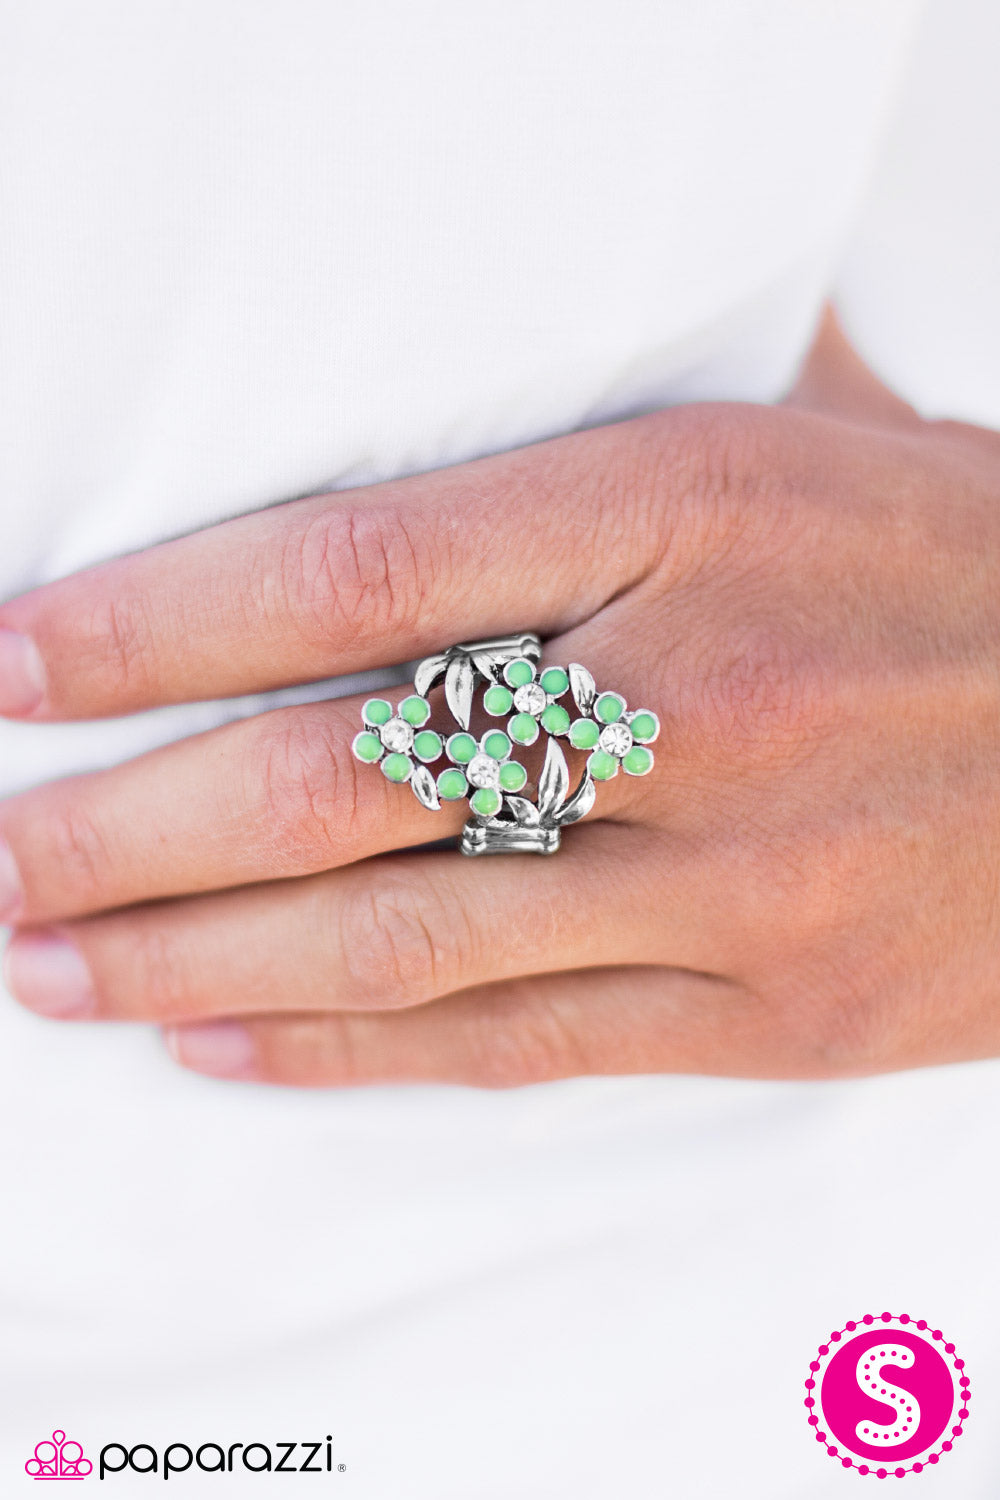 Spring Delight - Green - Paparazzi ring